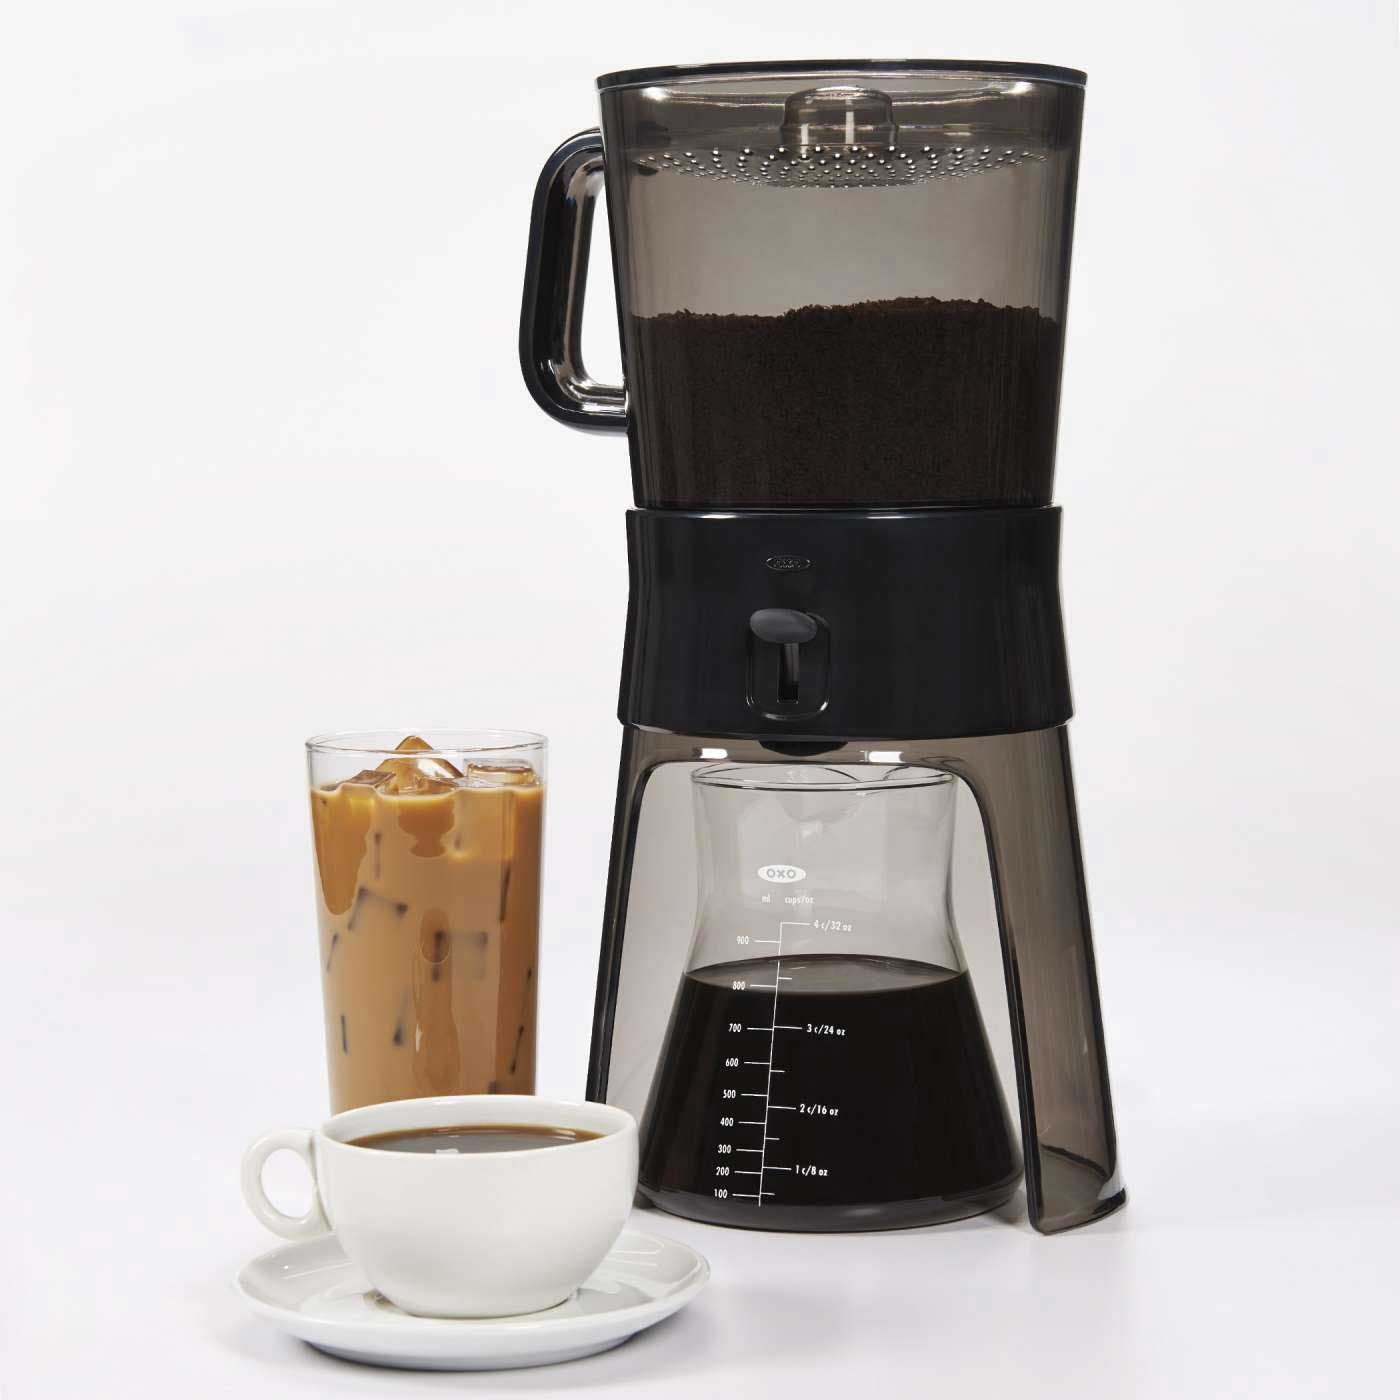 oxo cold brew system